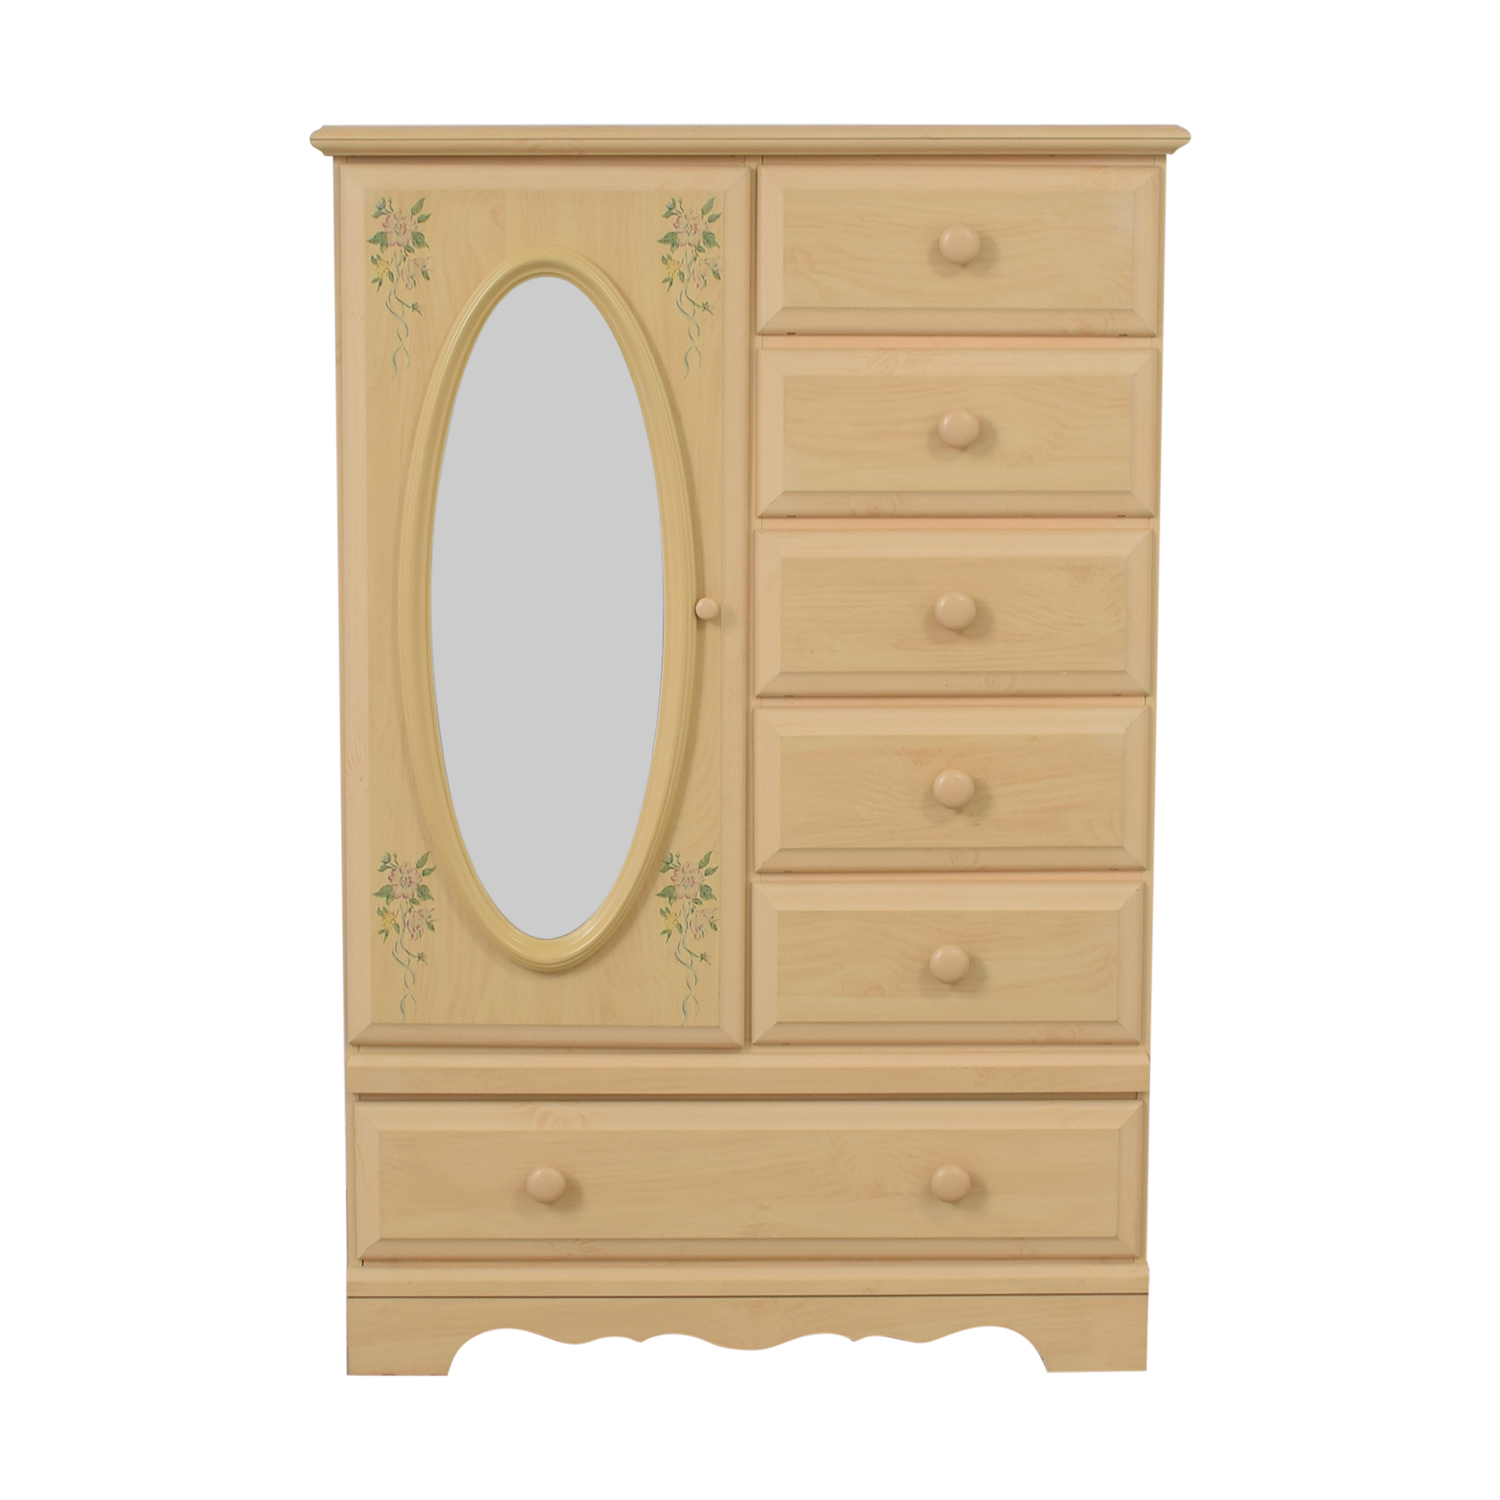 DMI Furniture DMI Furniture Vintage Wood Six-Drawer Child's Armoire with Mirror